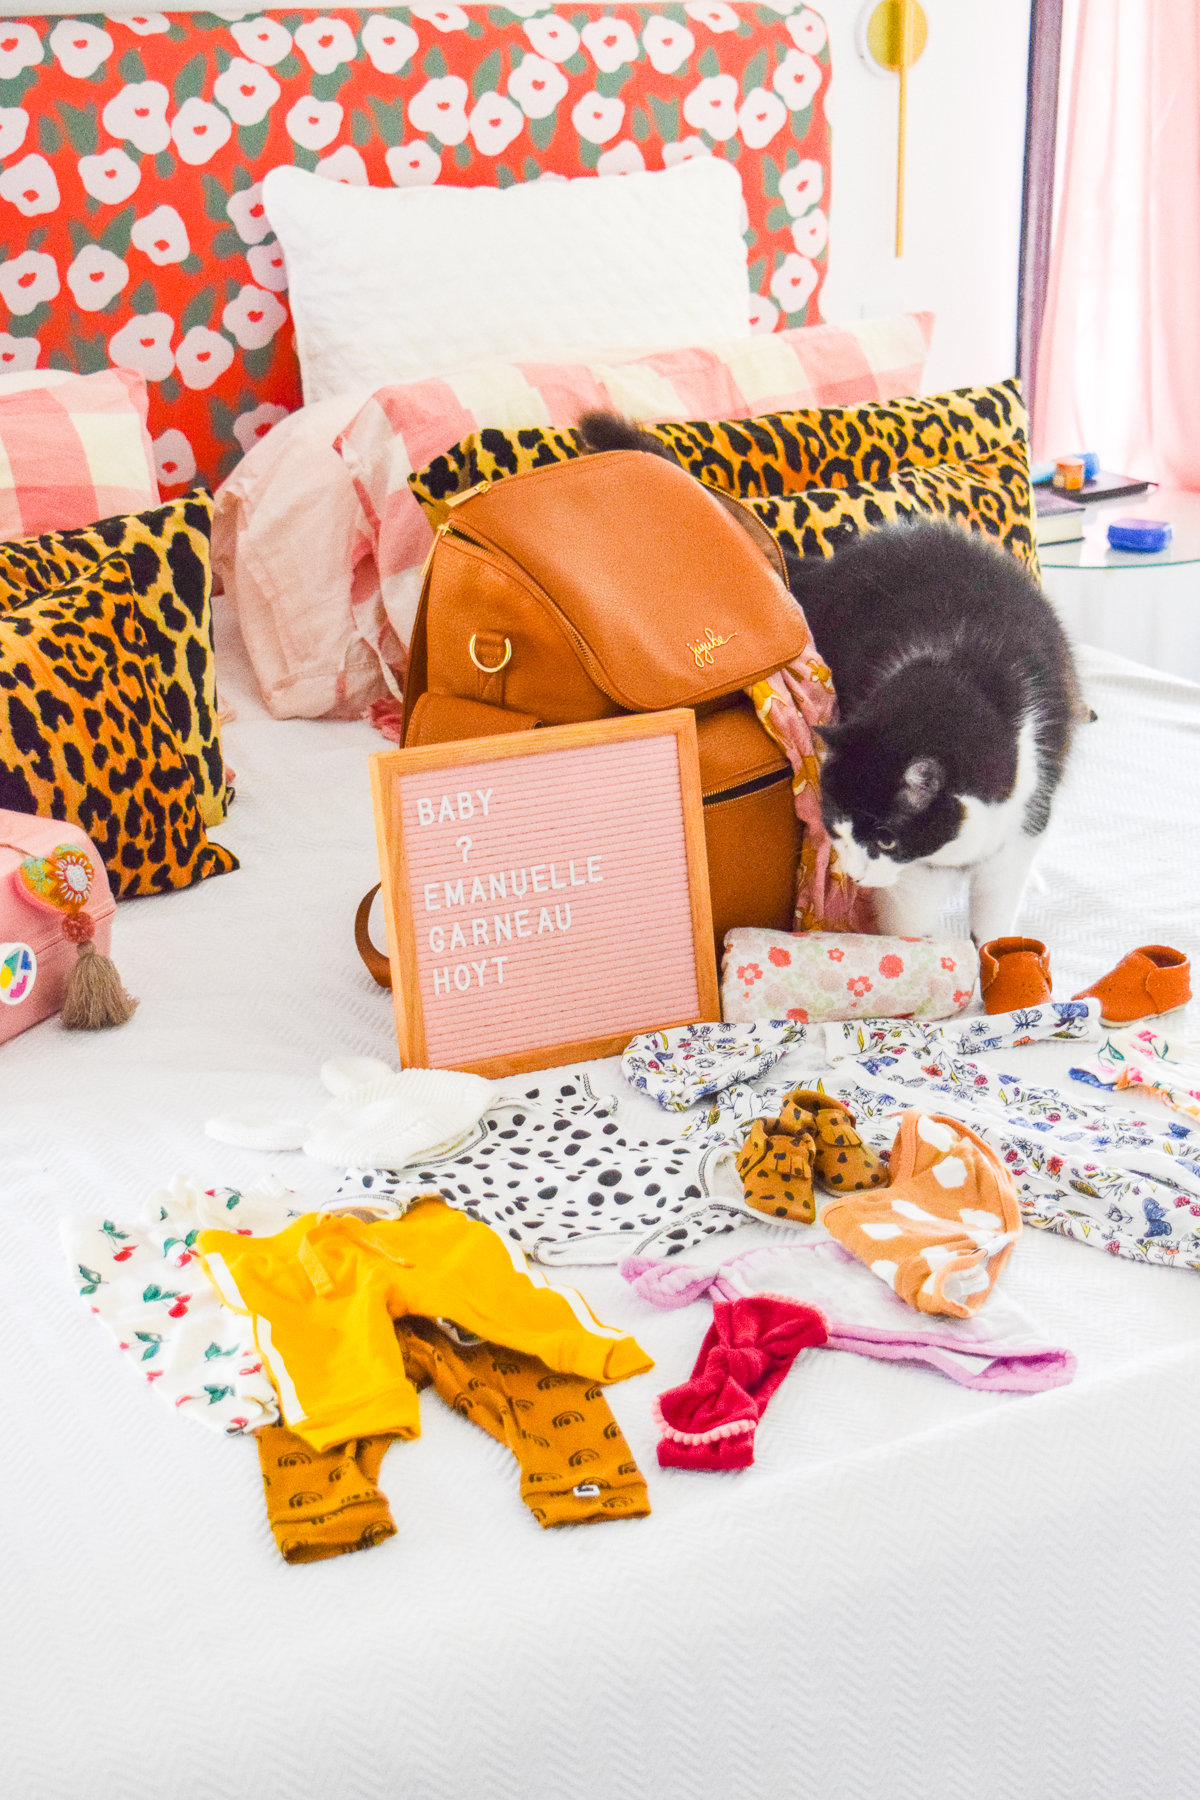 What to pack in your hospital bag? There are tons and tons of lists out there, but I've decided to keep it simple including what to pack for baby, and what to wear into the hospital.